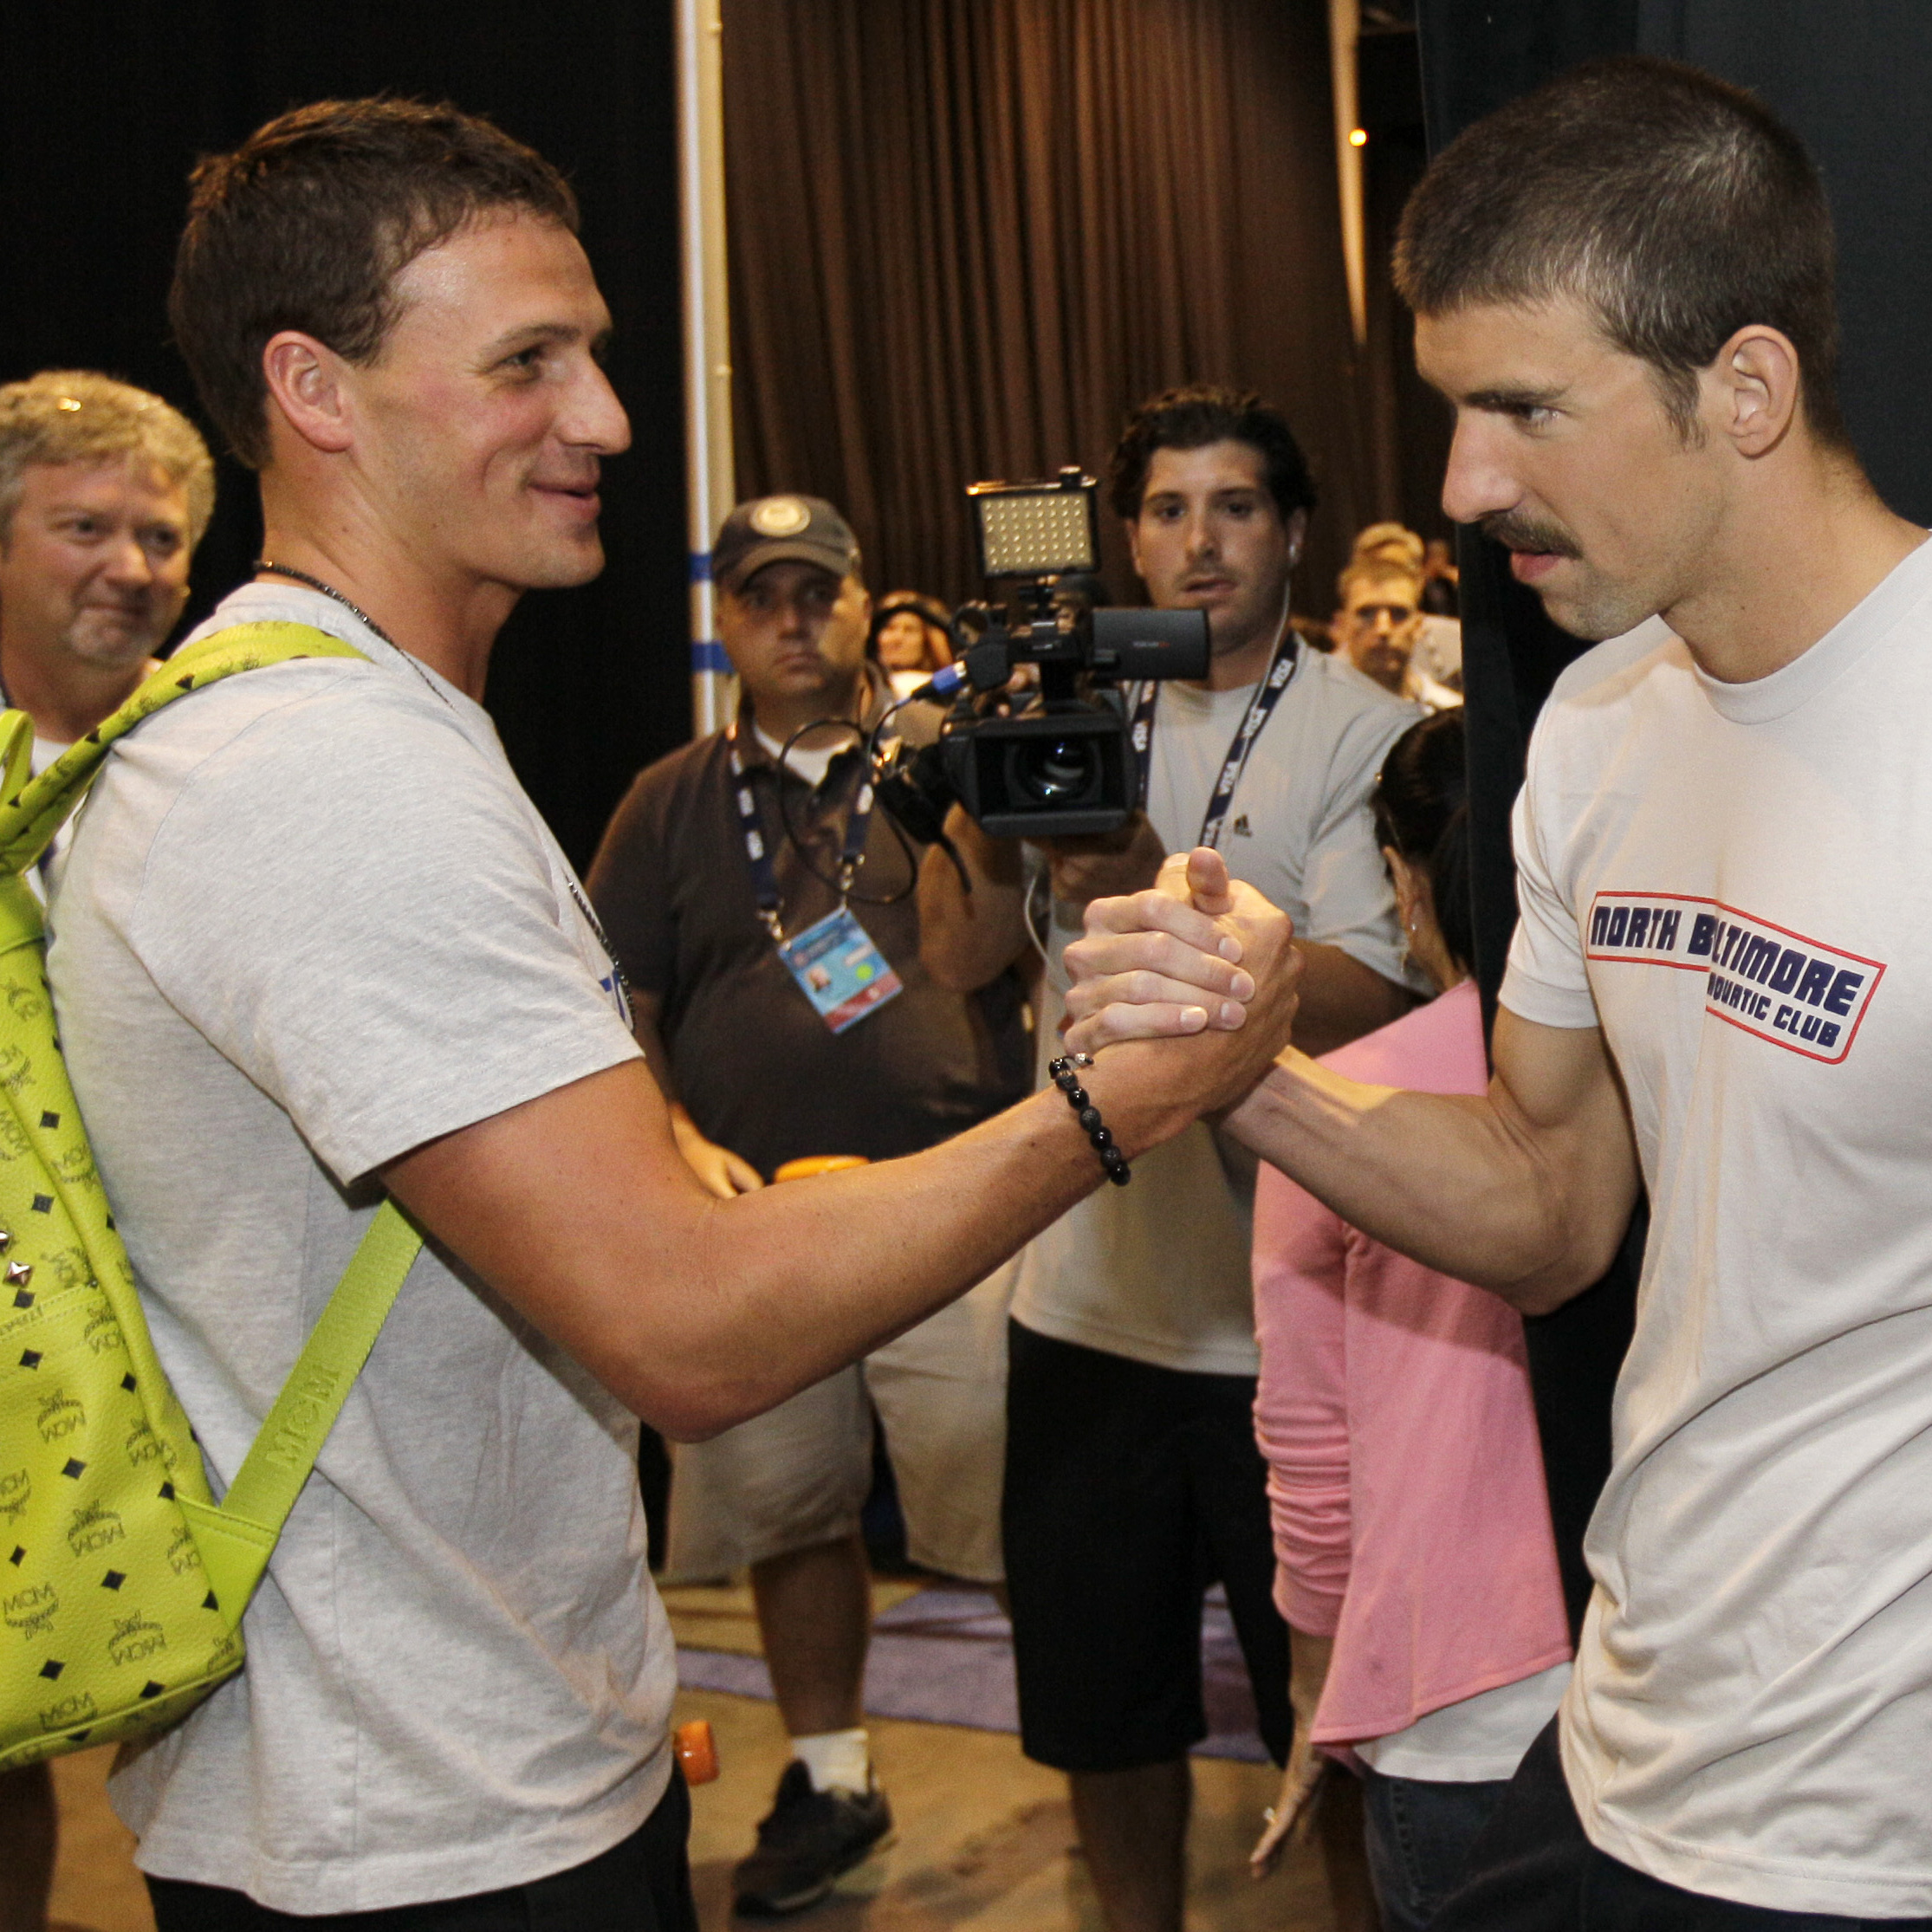 A beautiful bro-ment: Ryan Lochte and Michael Phelps give each other the traditional arm-wrestle bro-shake at the U.S. Olympic swimming trials in June 2012.